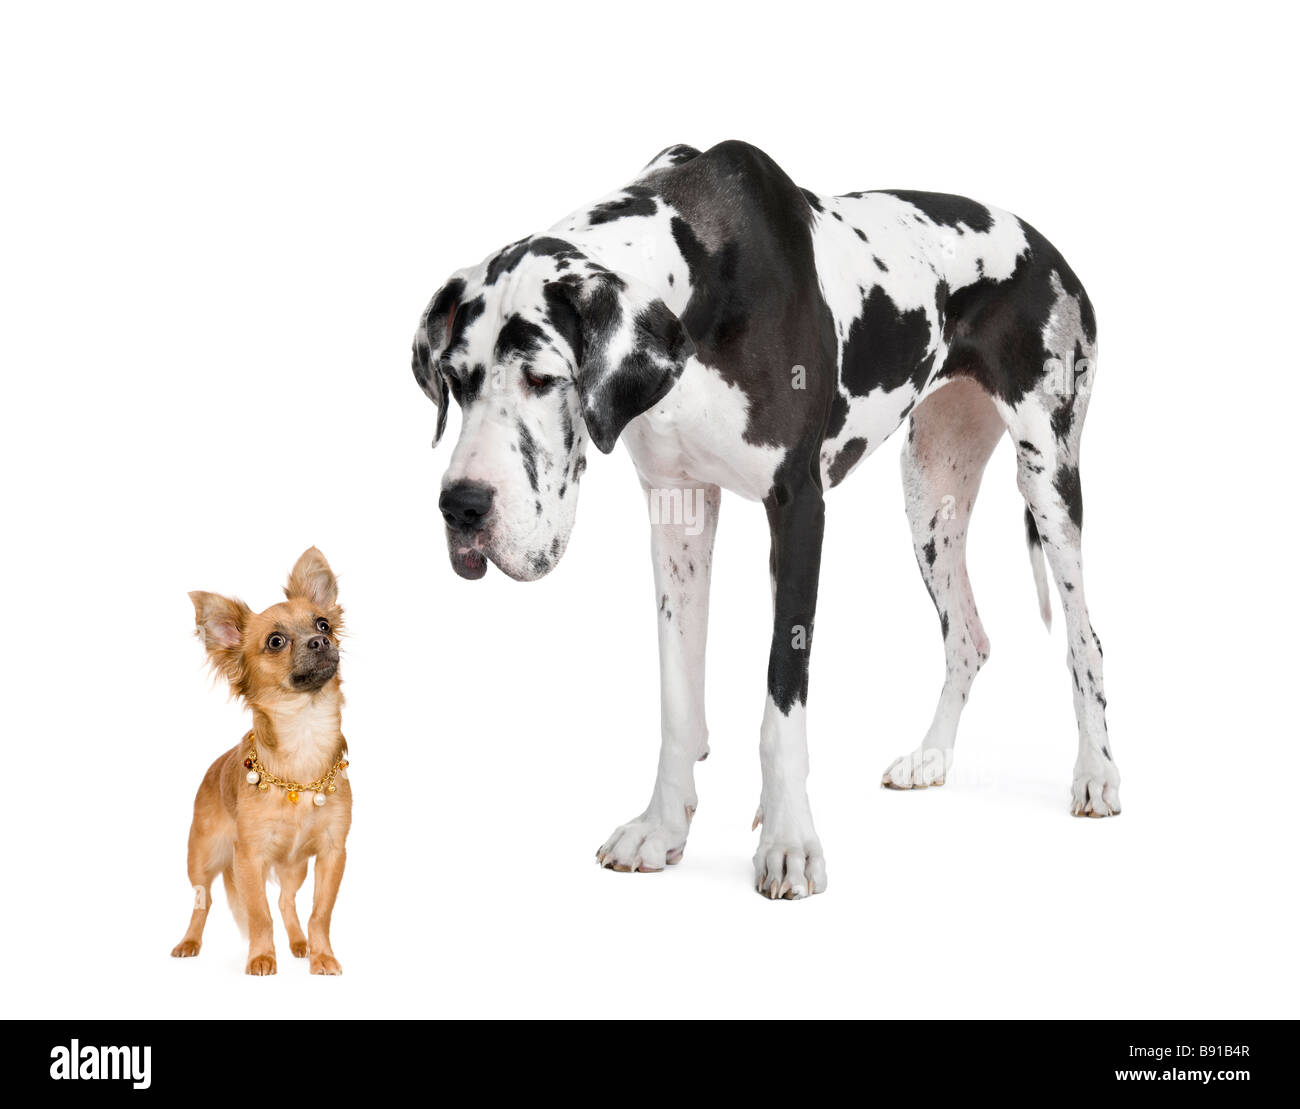 harlequin Great Dane 4 years looking down at a small chihuahua 18 months in front of a white background - Stock Image